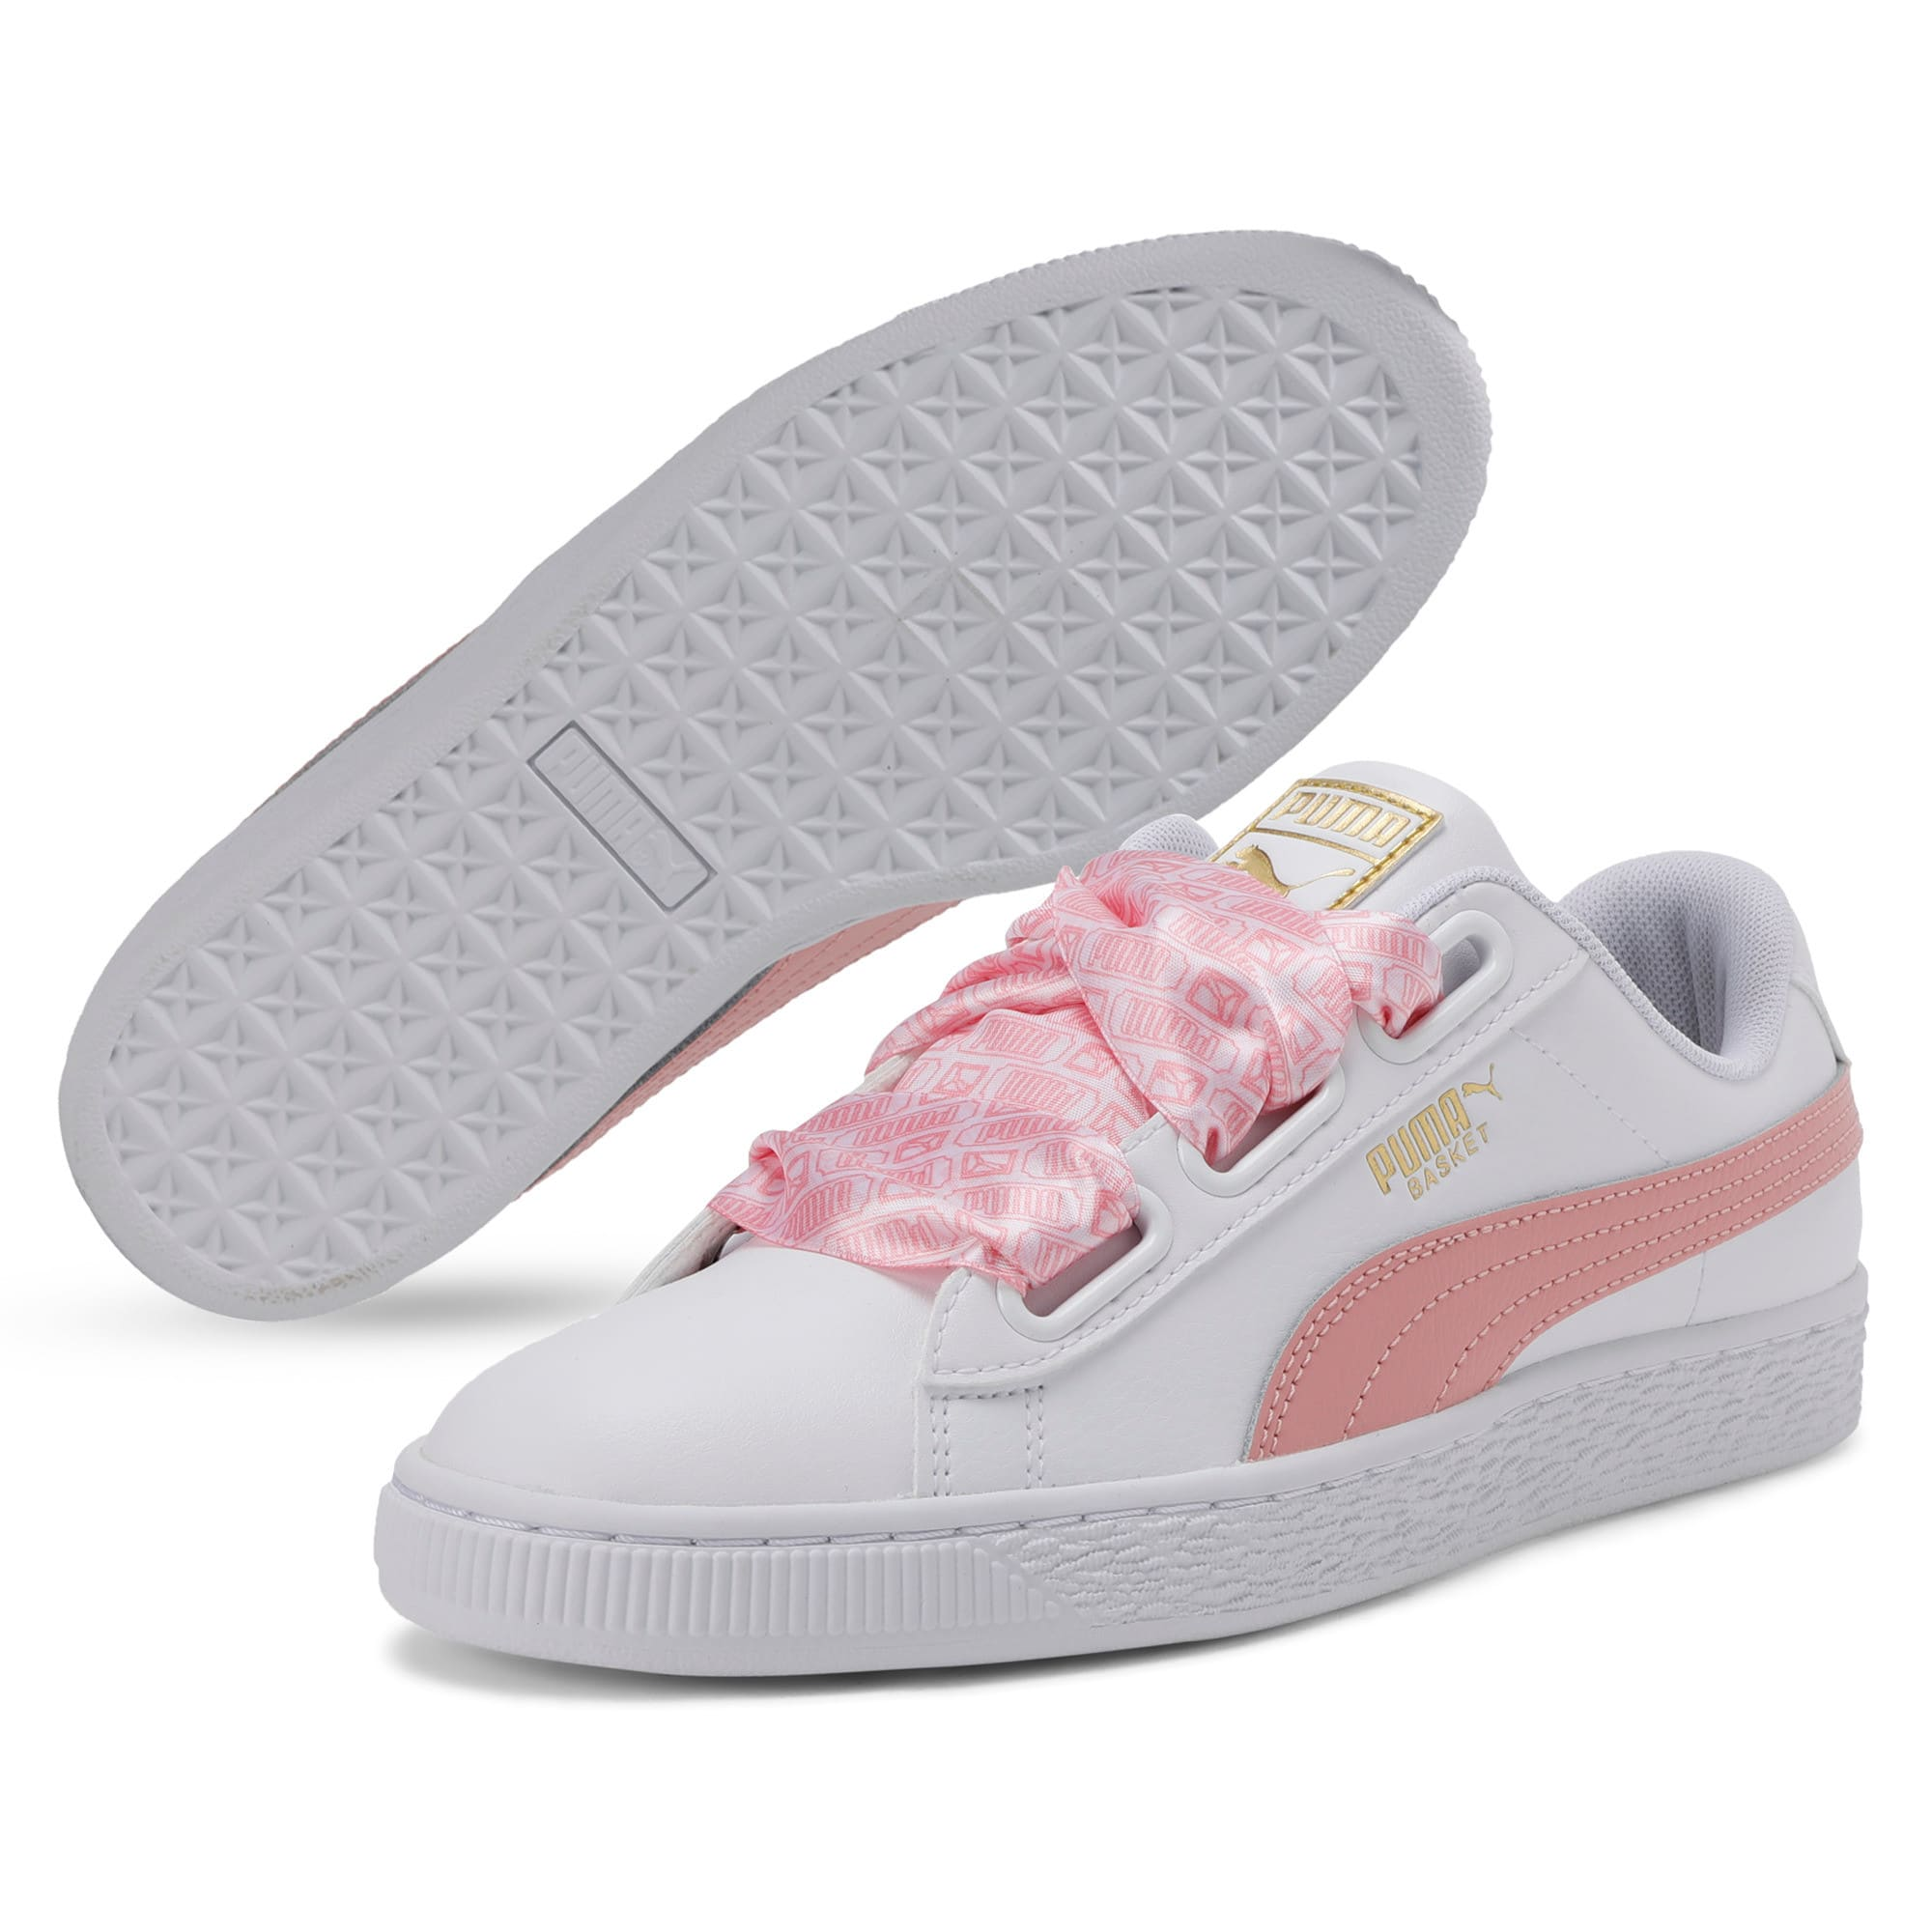 Thumbnail 4 of Basket Heart Reinvent Women's Trainers, Puma White-Bridal Rose, medium-IND